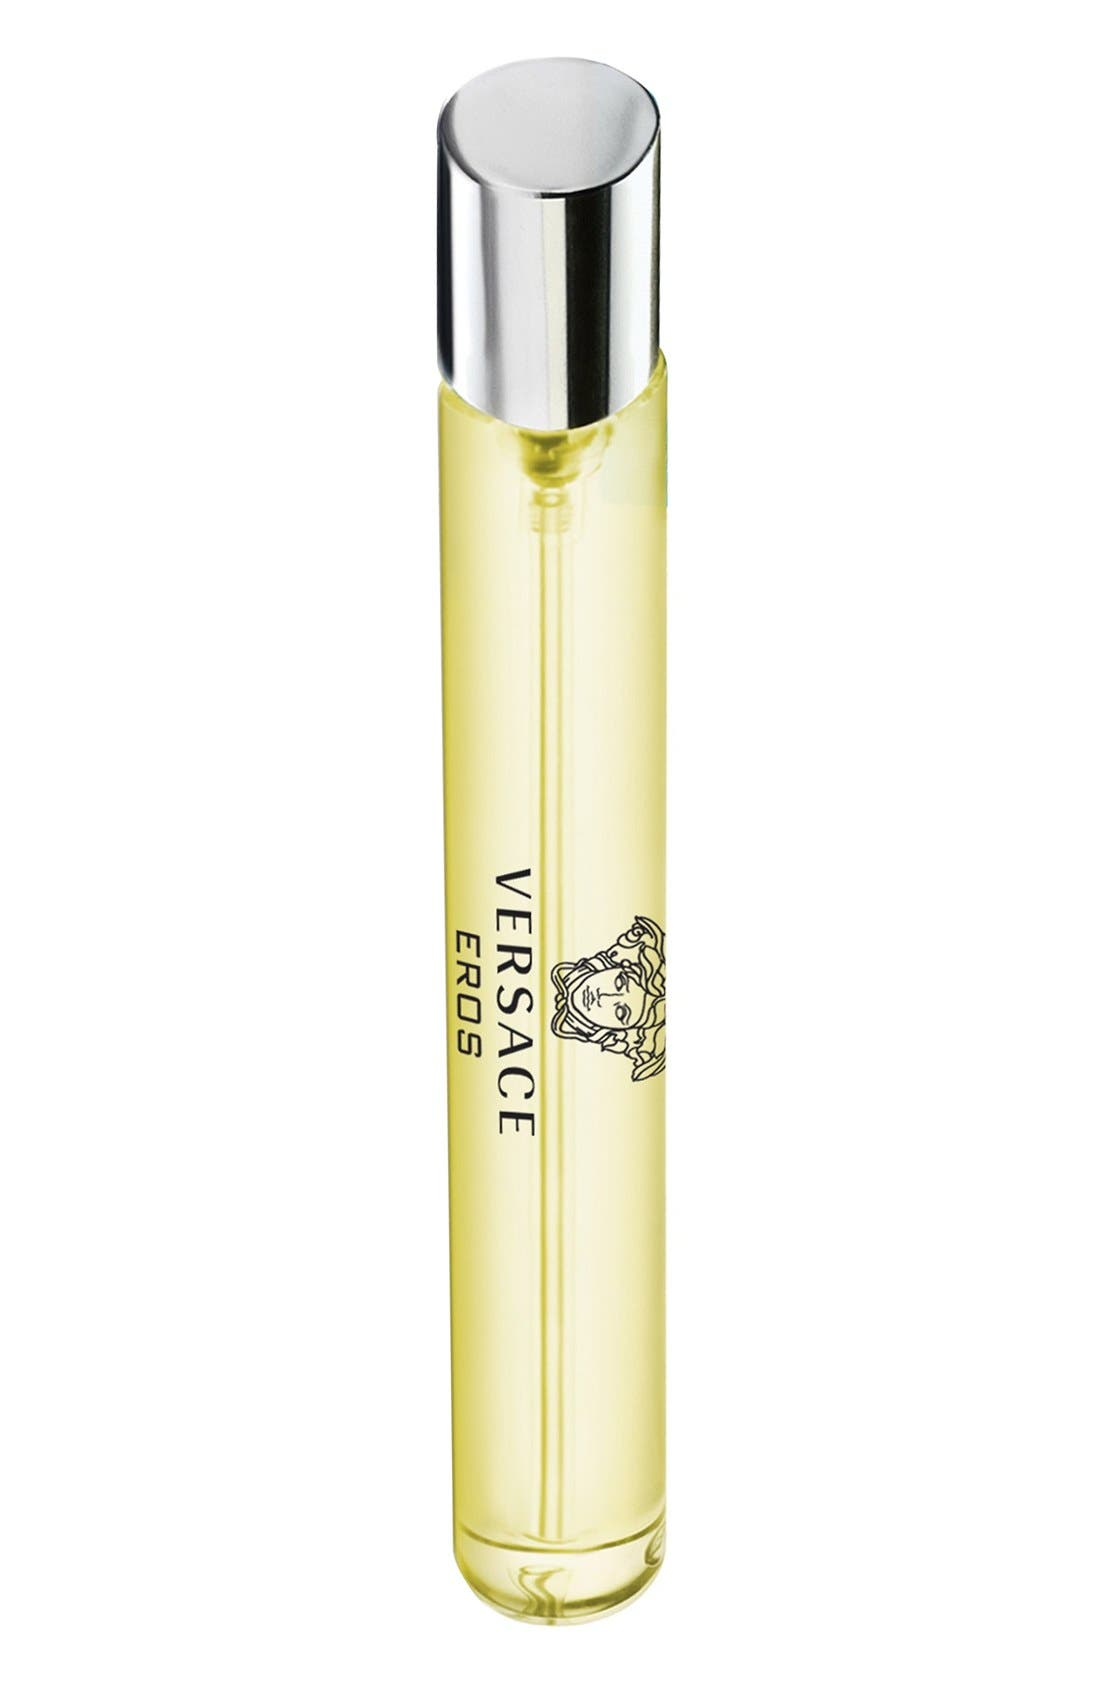 Versace 'Eros' Eau de Toilette Travel Spray